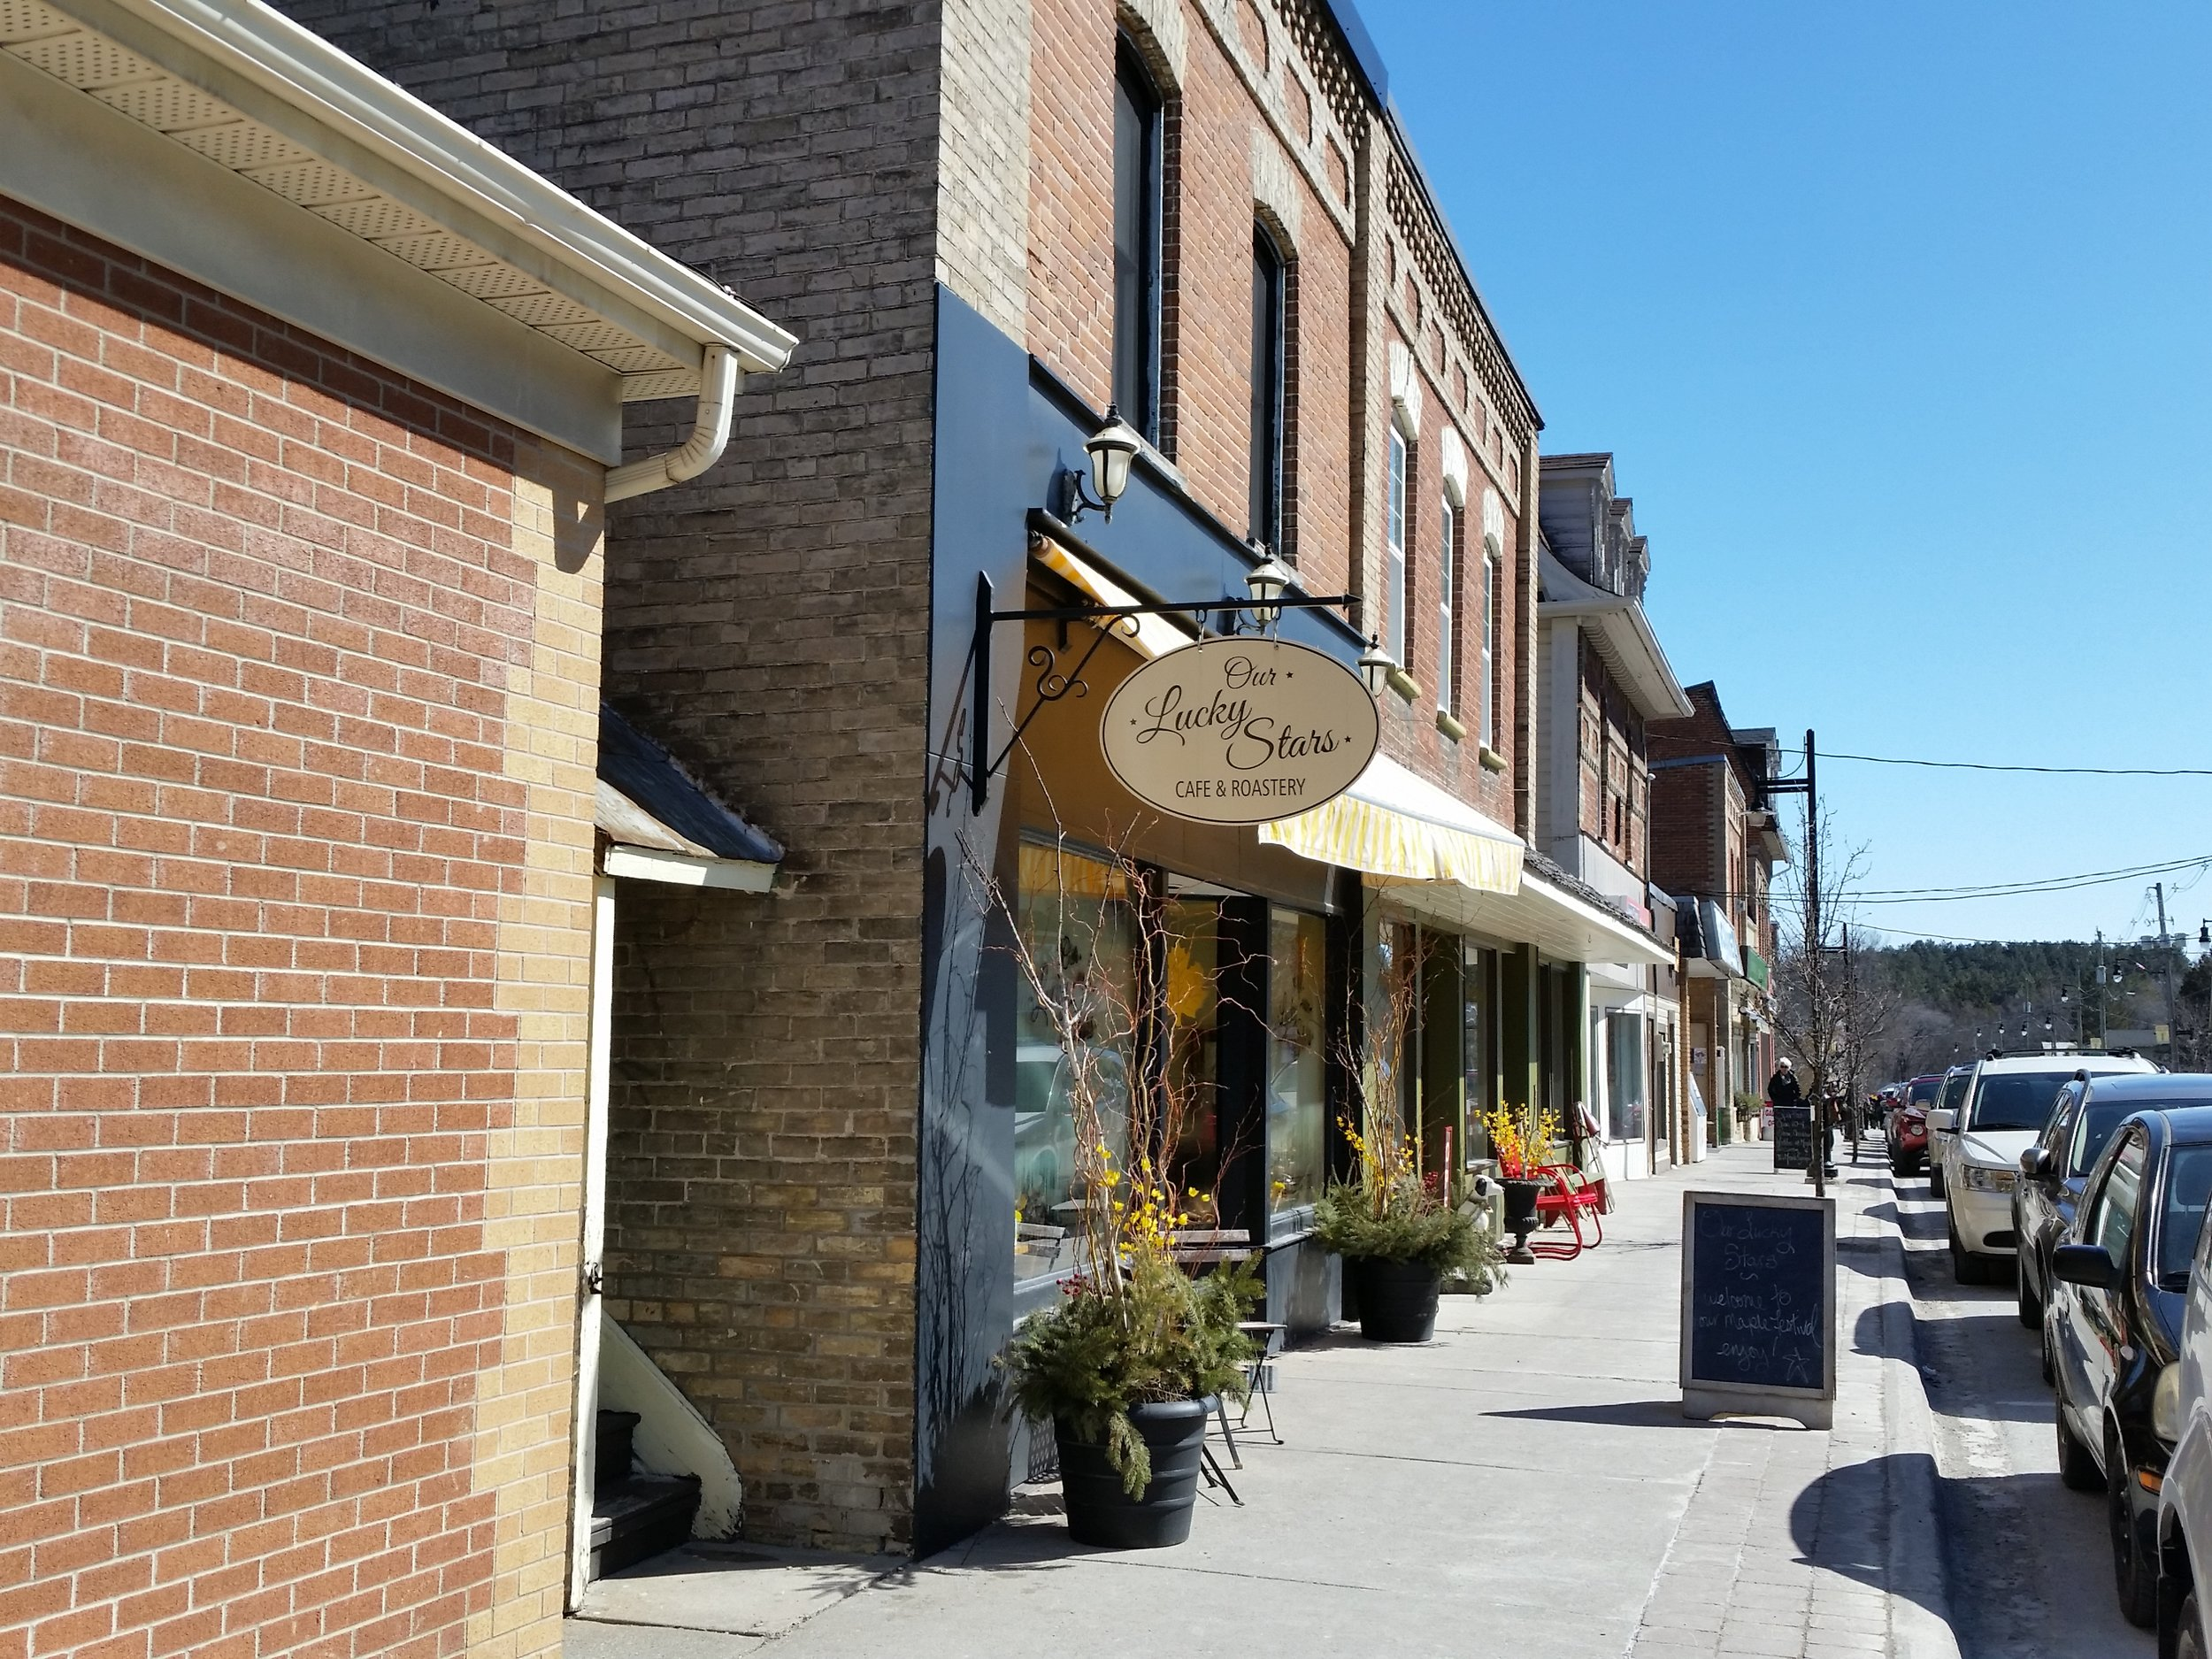 The picturesque main street of Warkworth, Ontario.